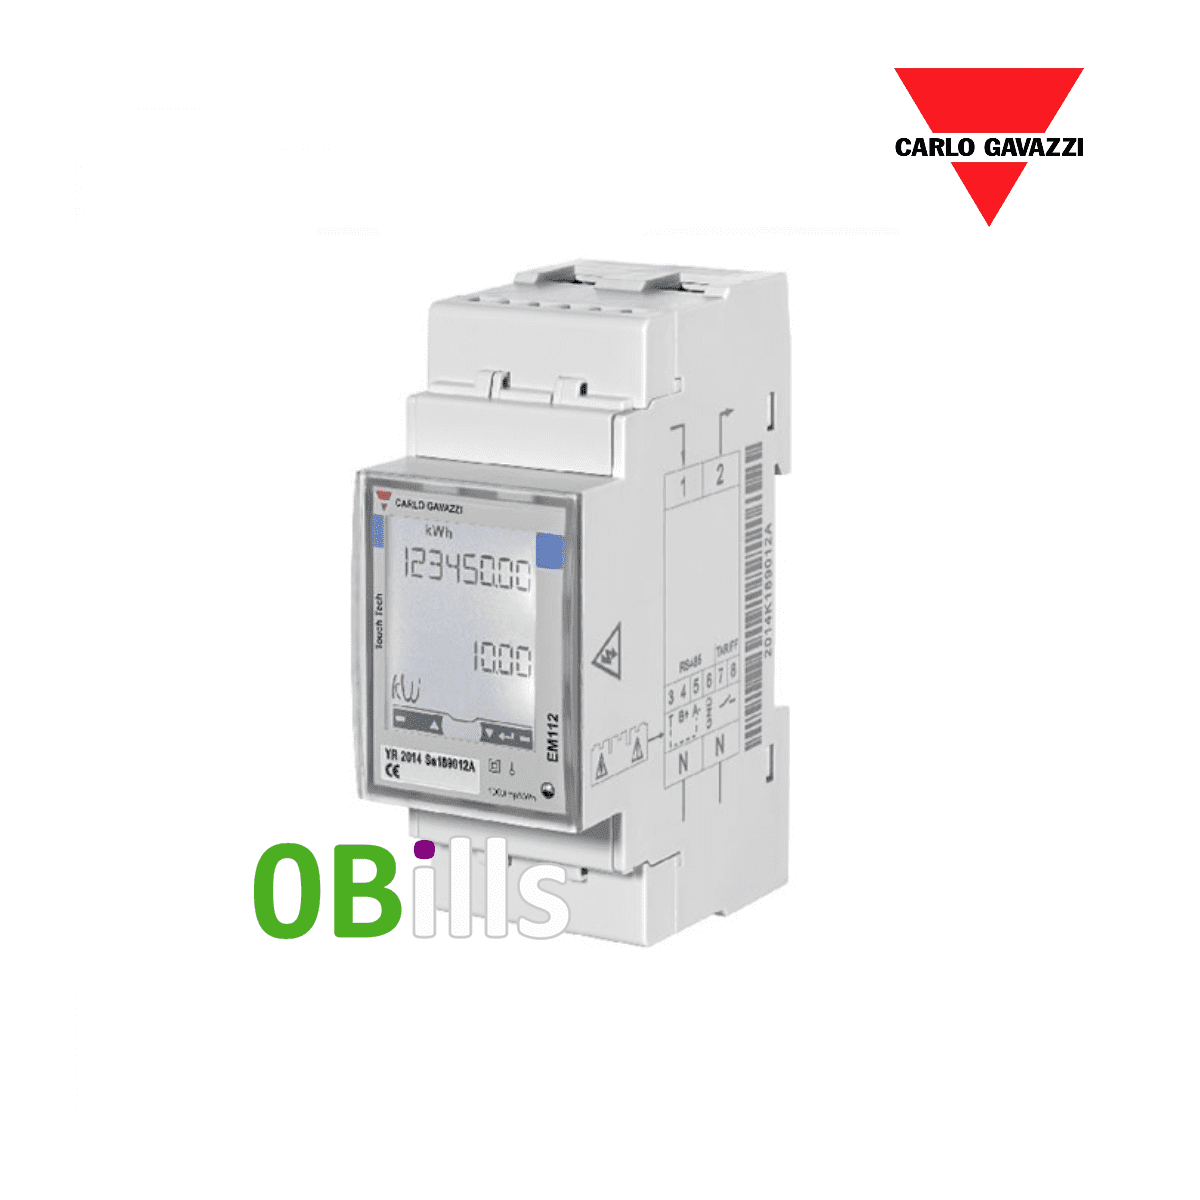 Carlo Gavazzi EM112 1 Phase Smart Energy Meter 100A